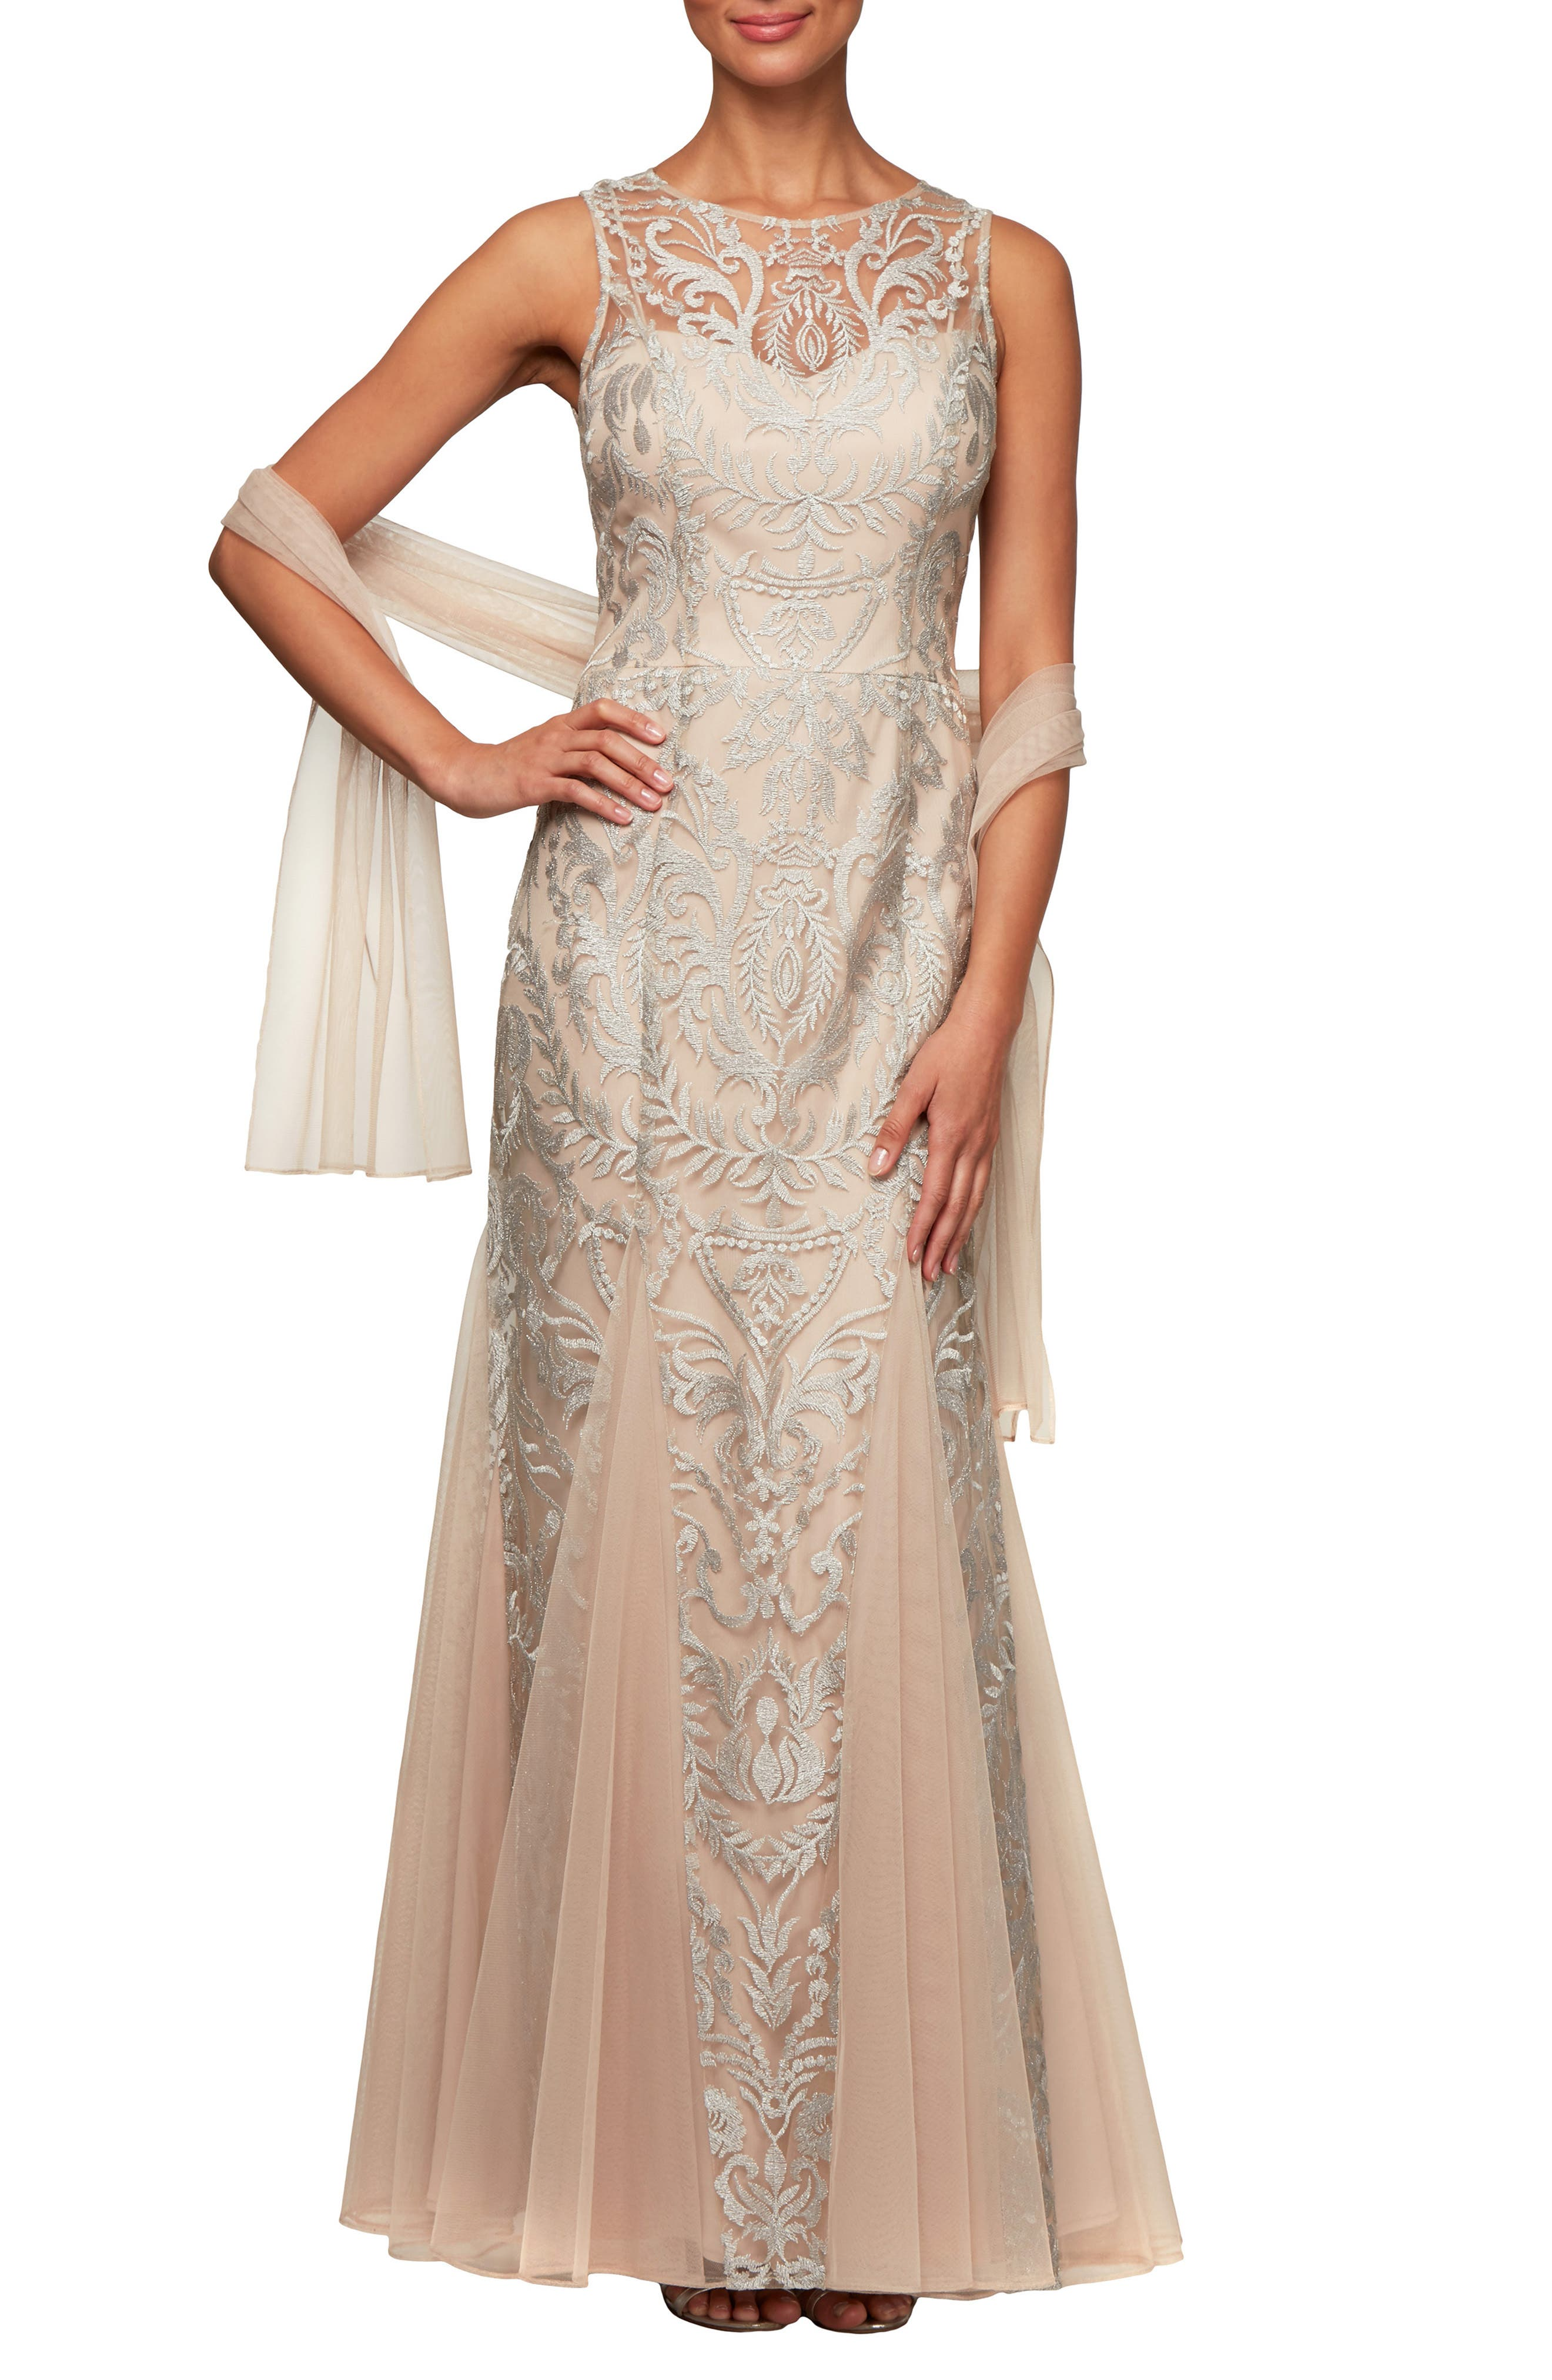 Petite Alex Evenings Embroidered Illusion Mesh Evening Dress With Wrap, Beige